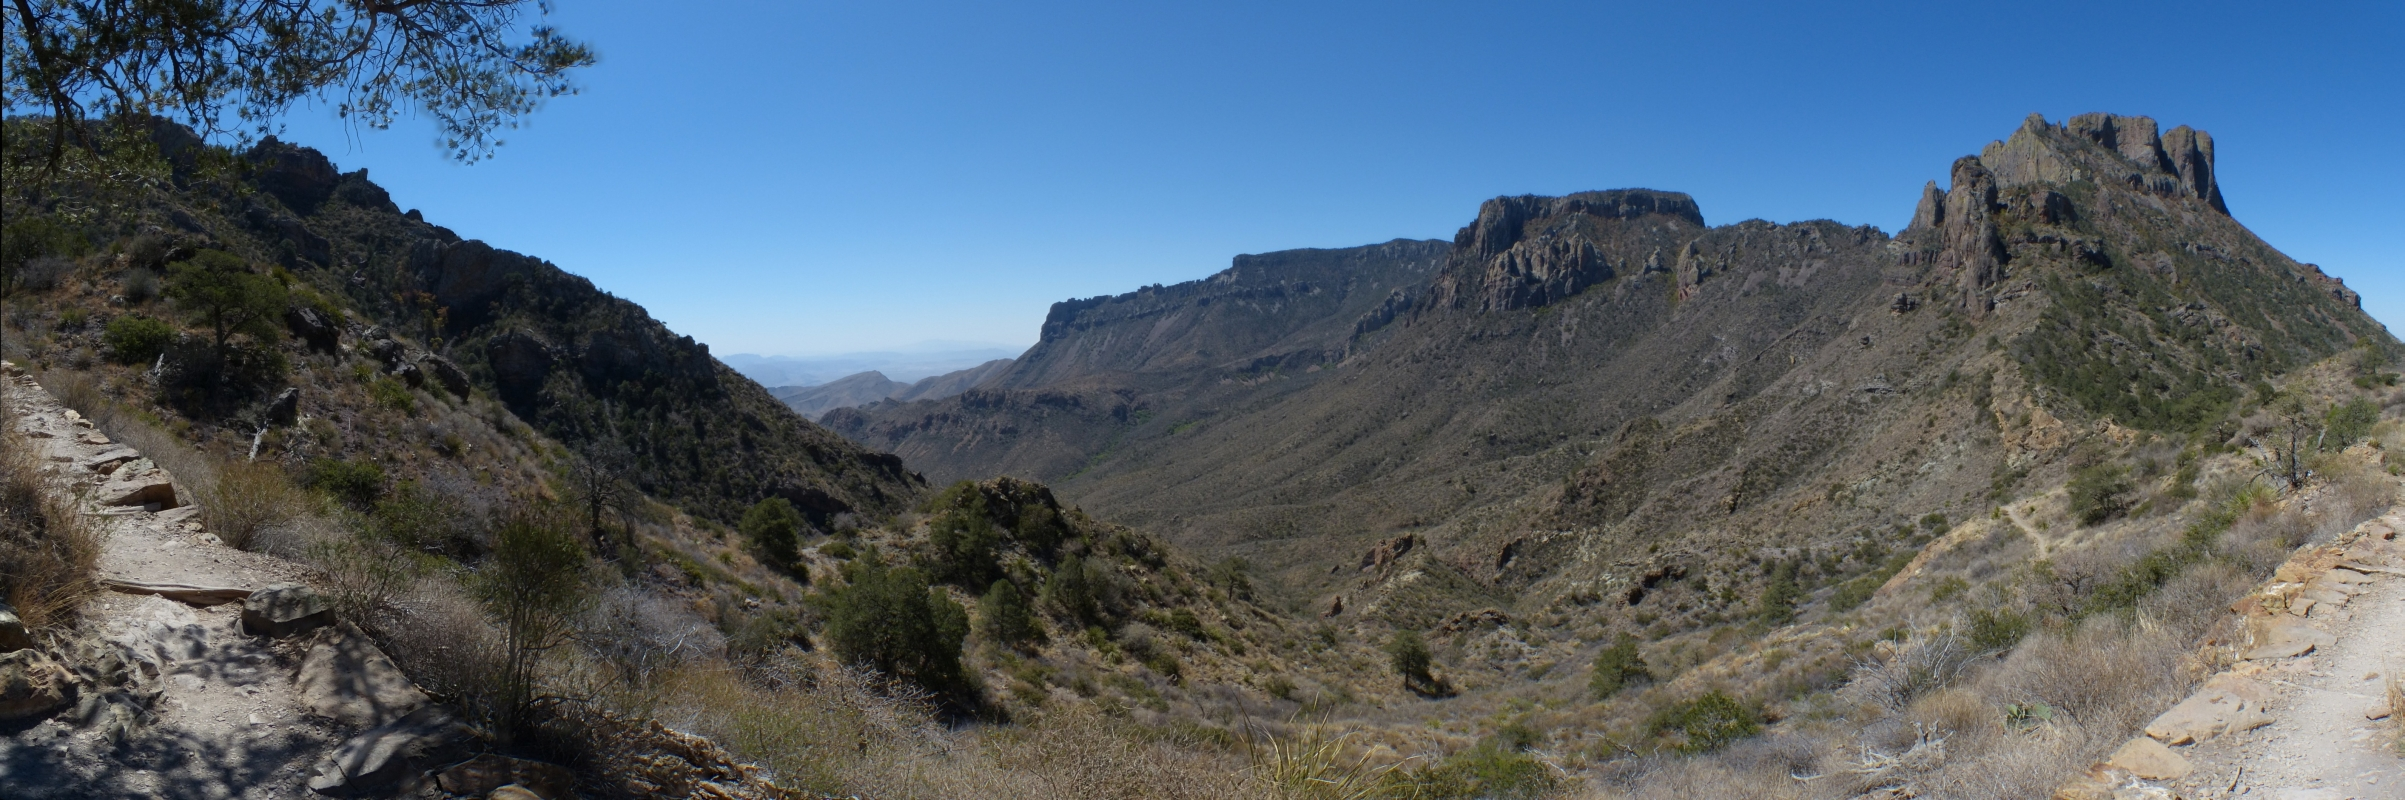 P1000784_canyon_panoramic_180.jpg